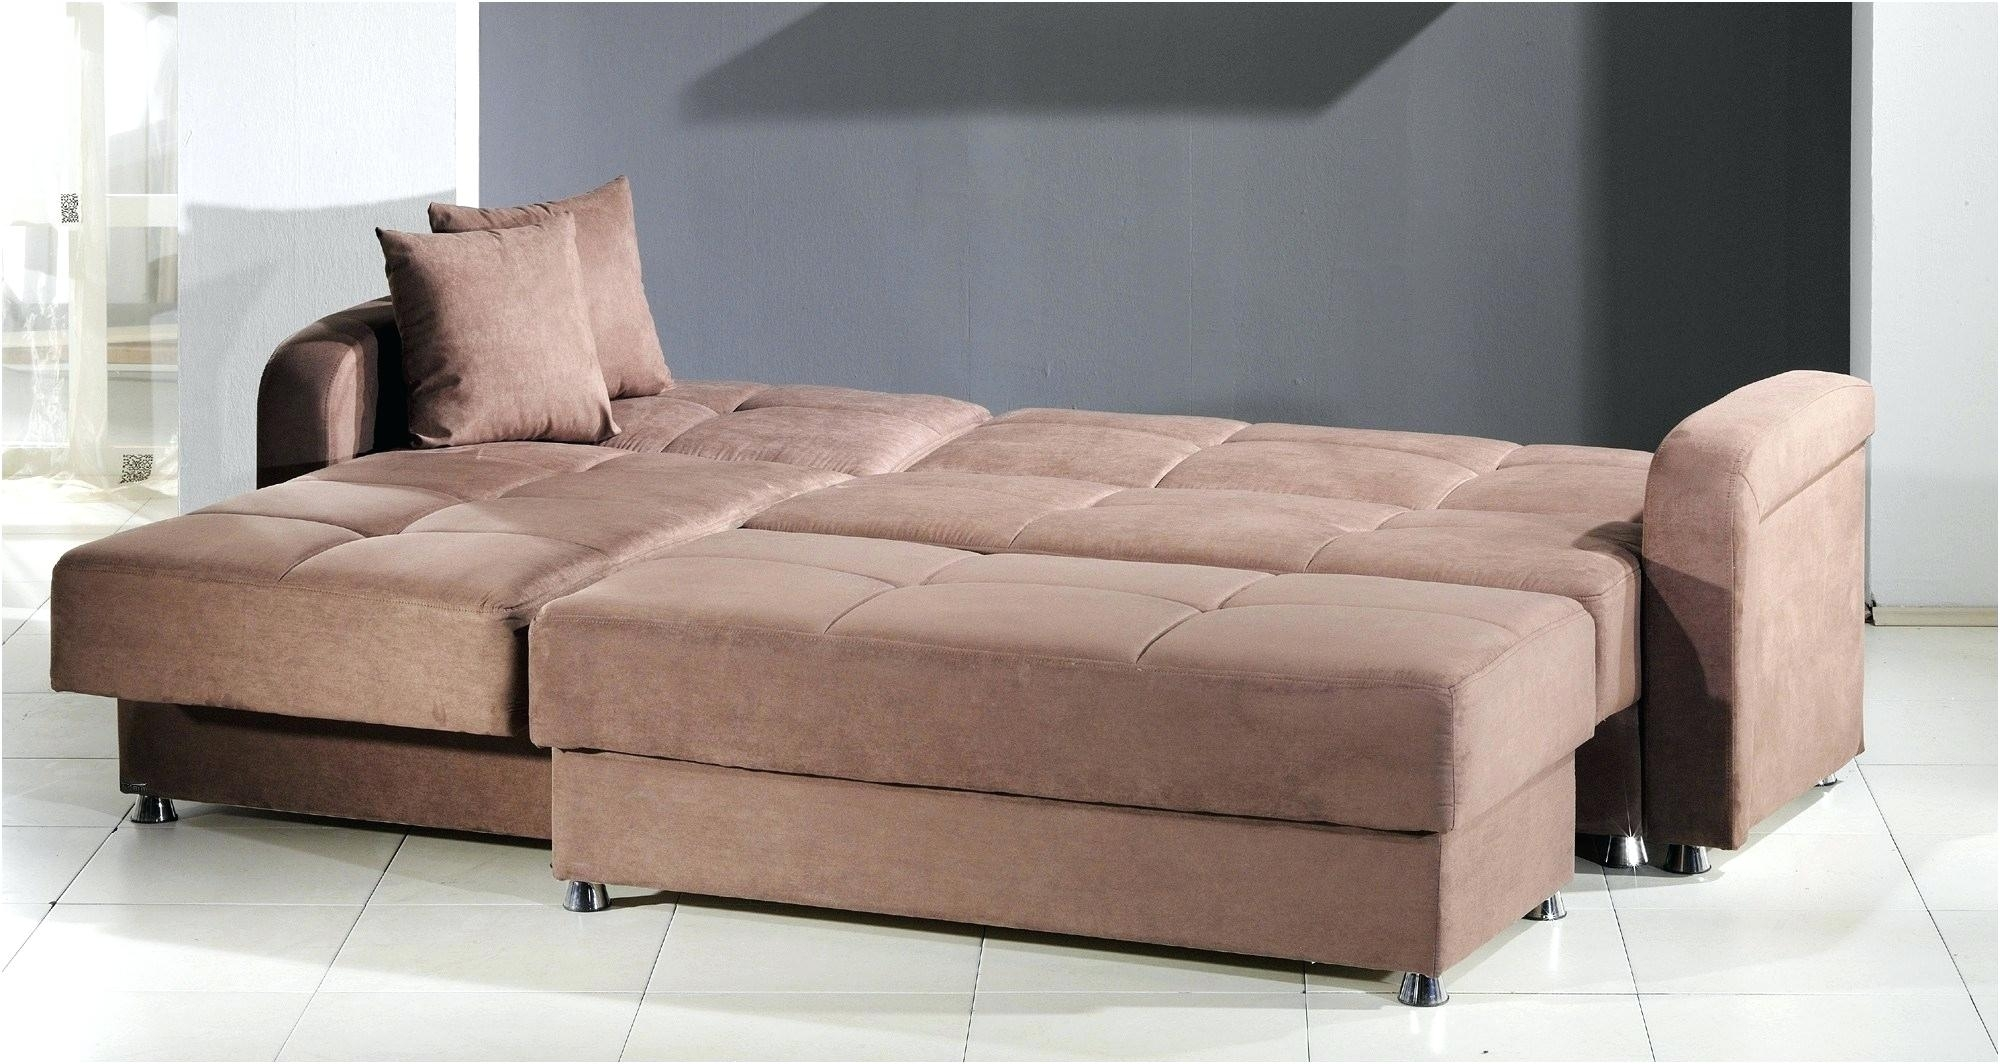 Decoration: Sofa Bed With Storage Underneath Full Size Of Sectional For Nz Sectional Sofas (View 8 of 10)